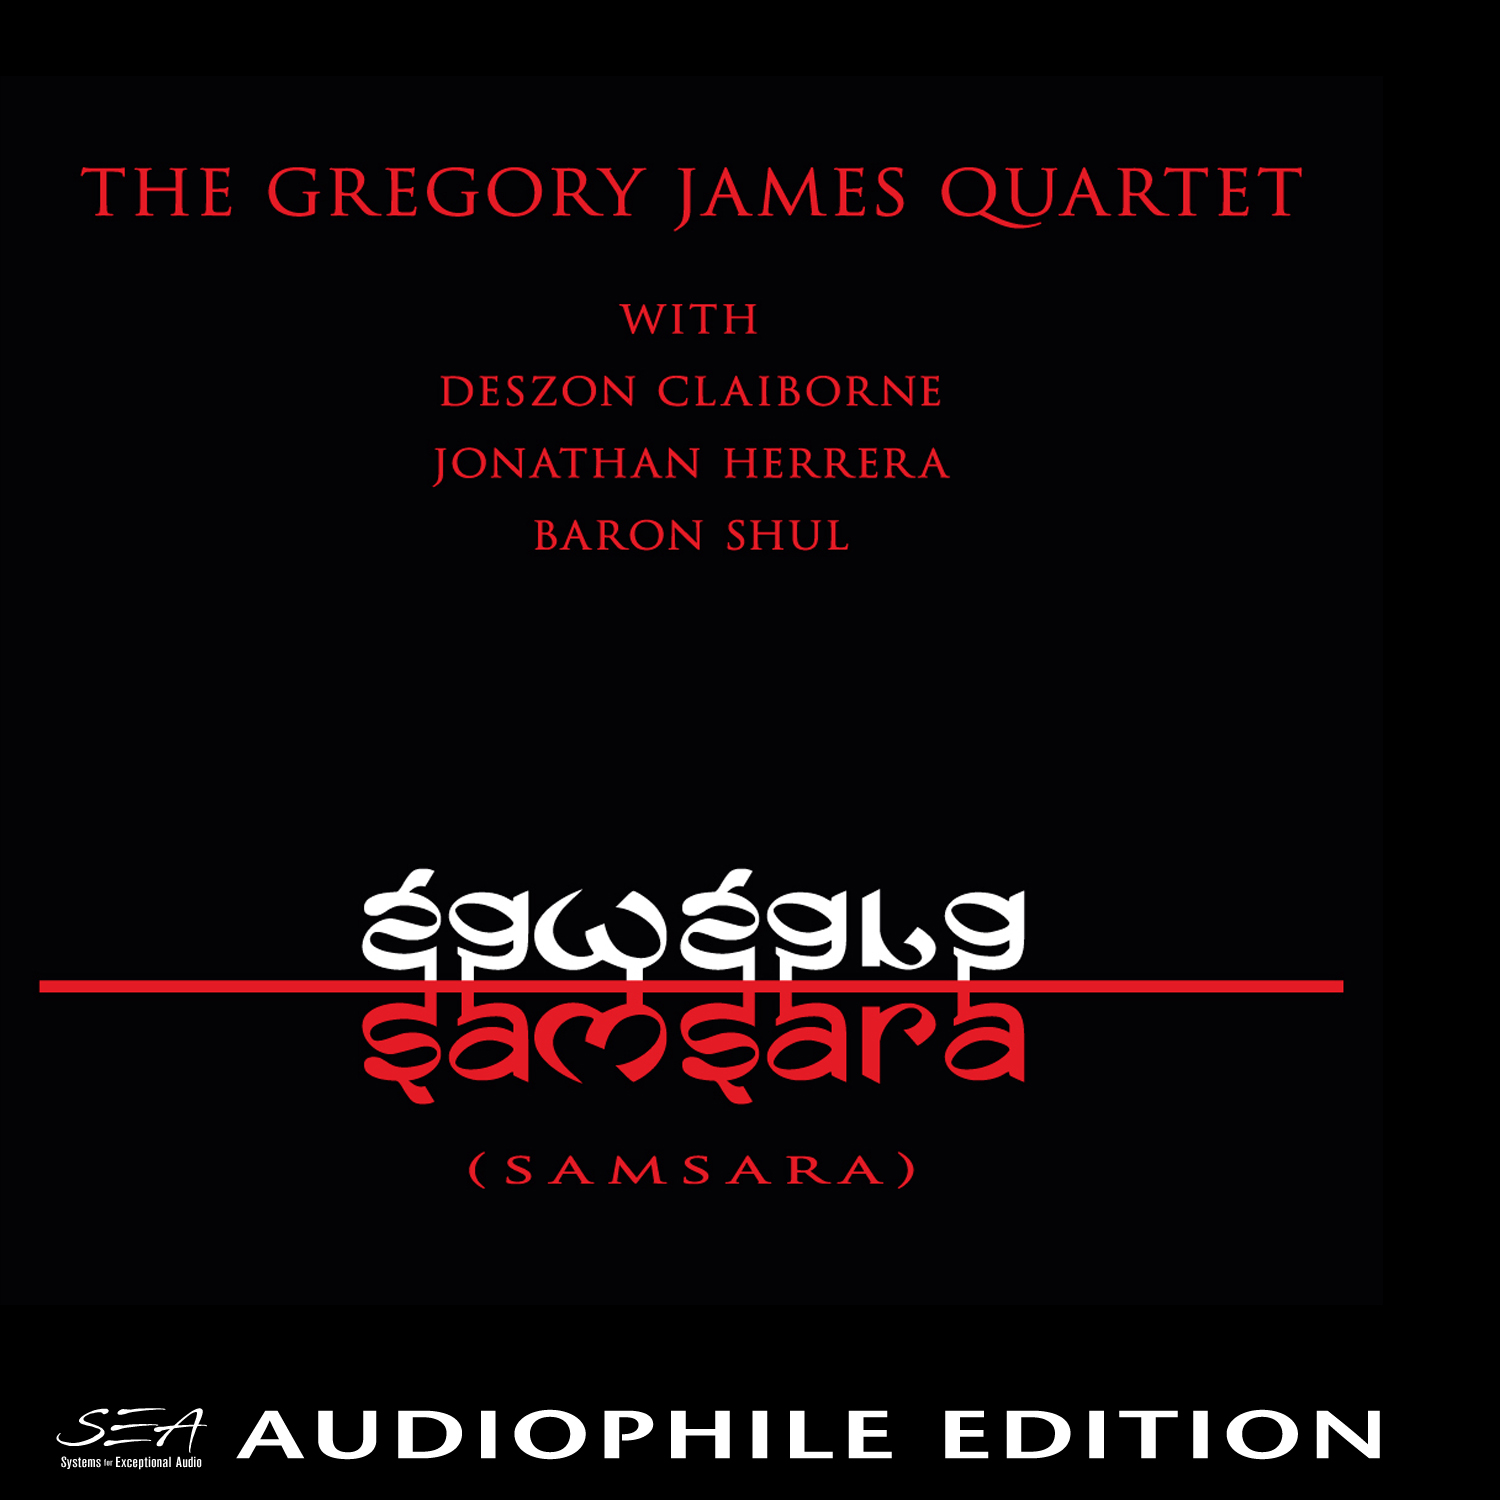 Gregory James - Samsara - Cover Image